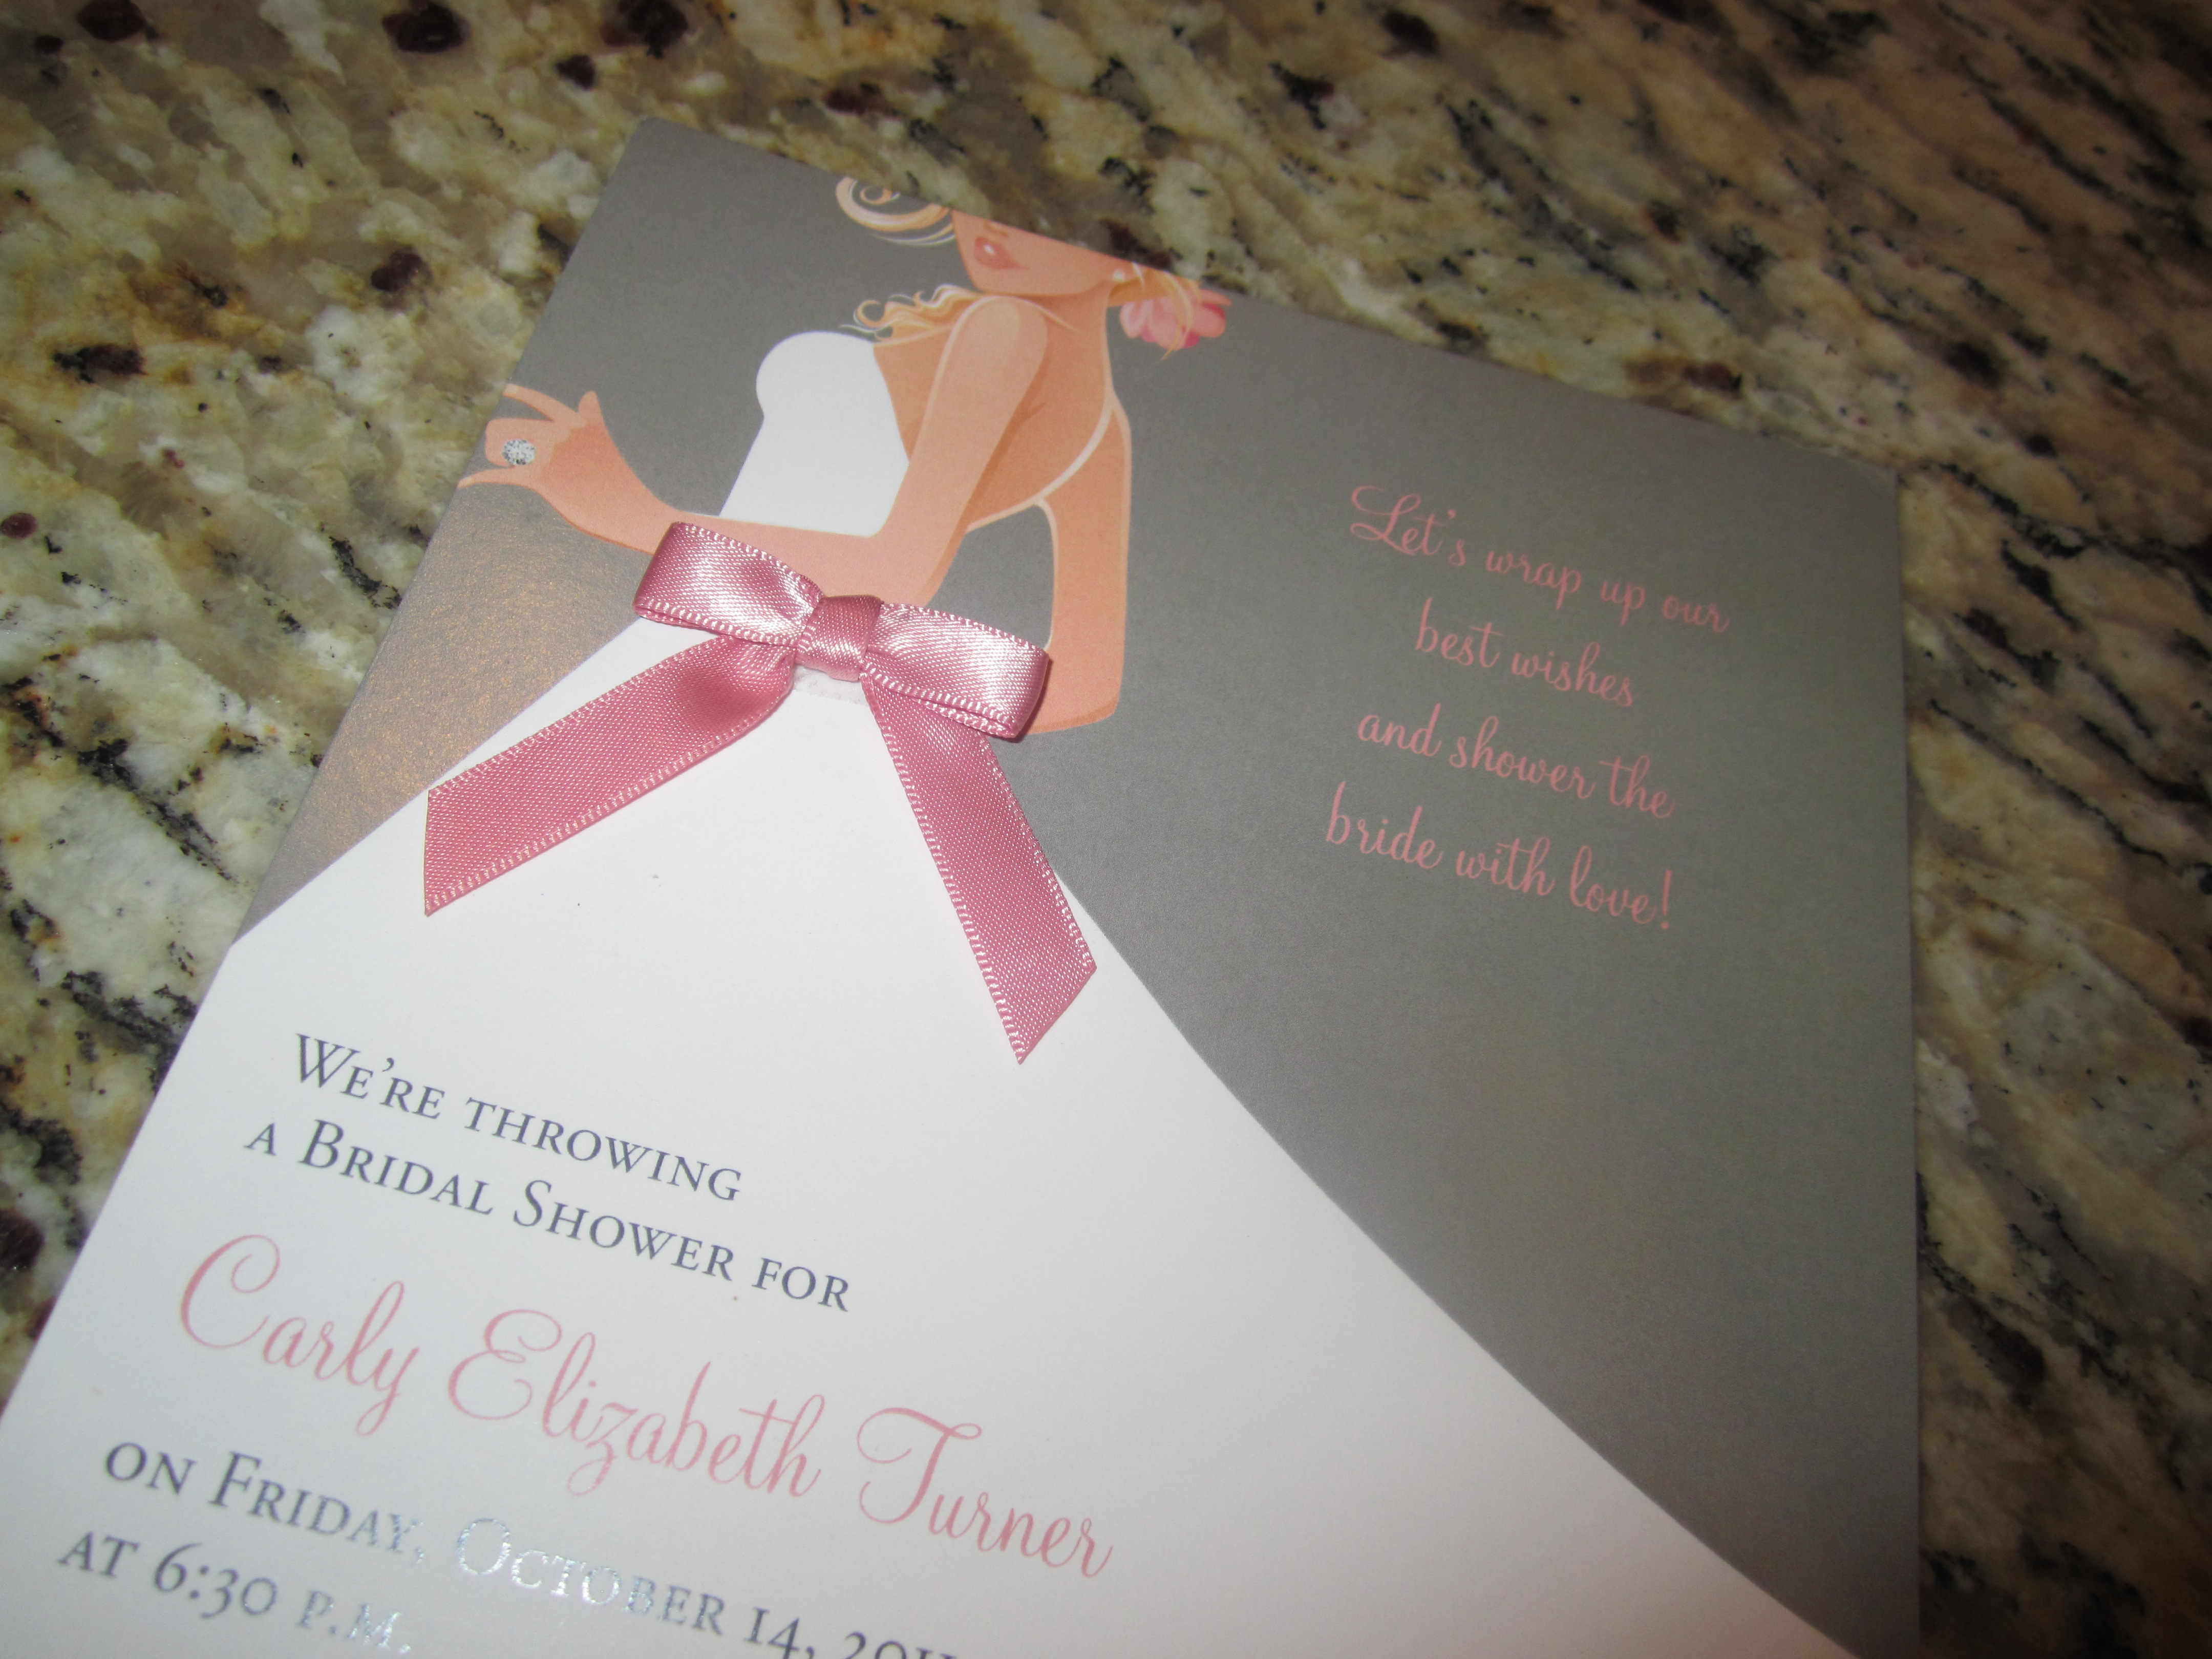 10 Most Recommended Diy Bridal Shower Invitations Ideas photo bridal shower invitations wording image 1 2020